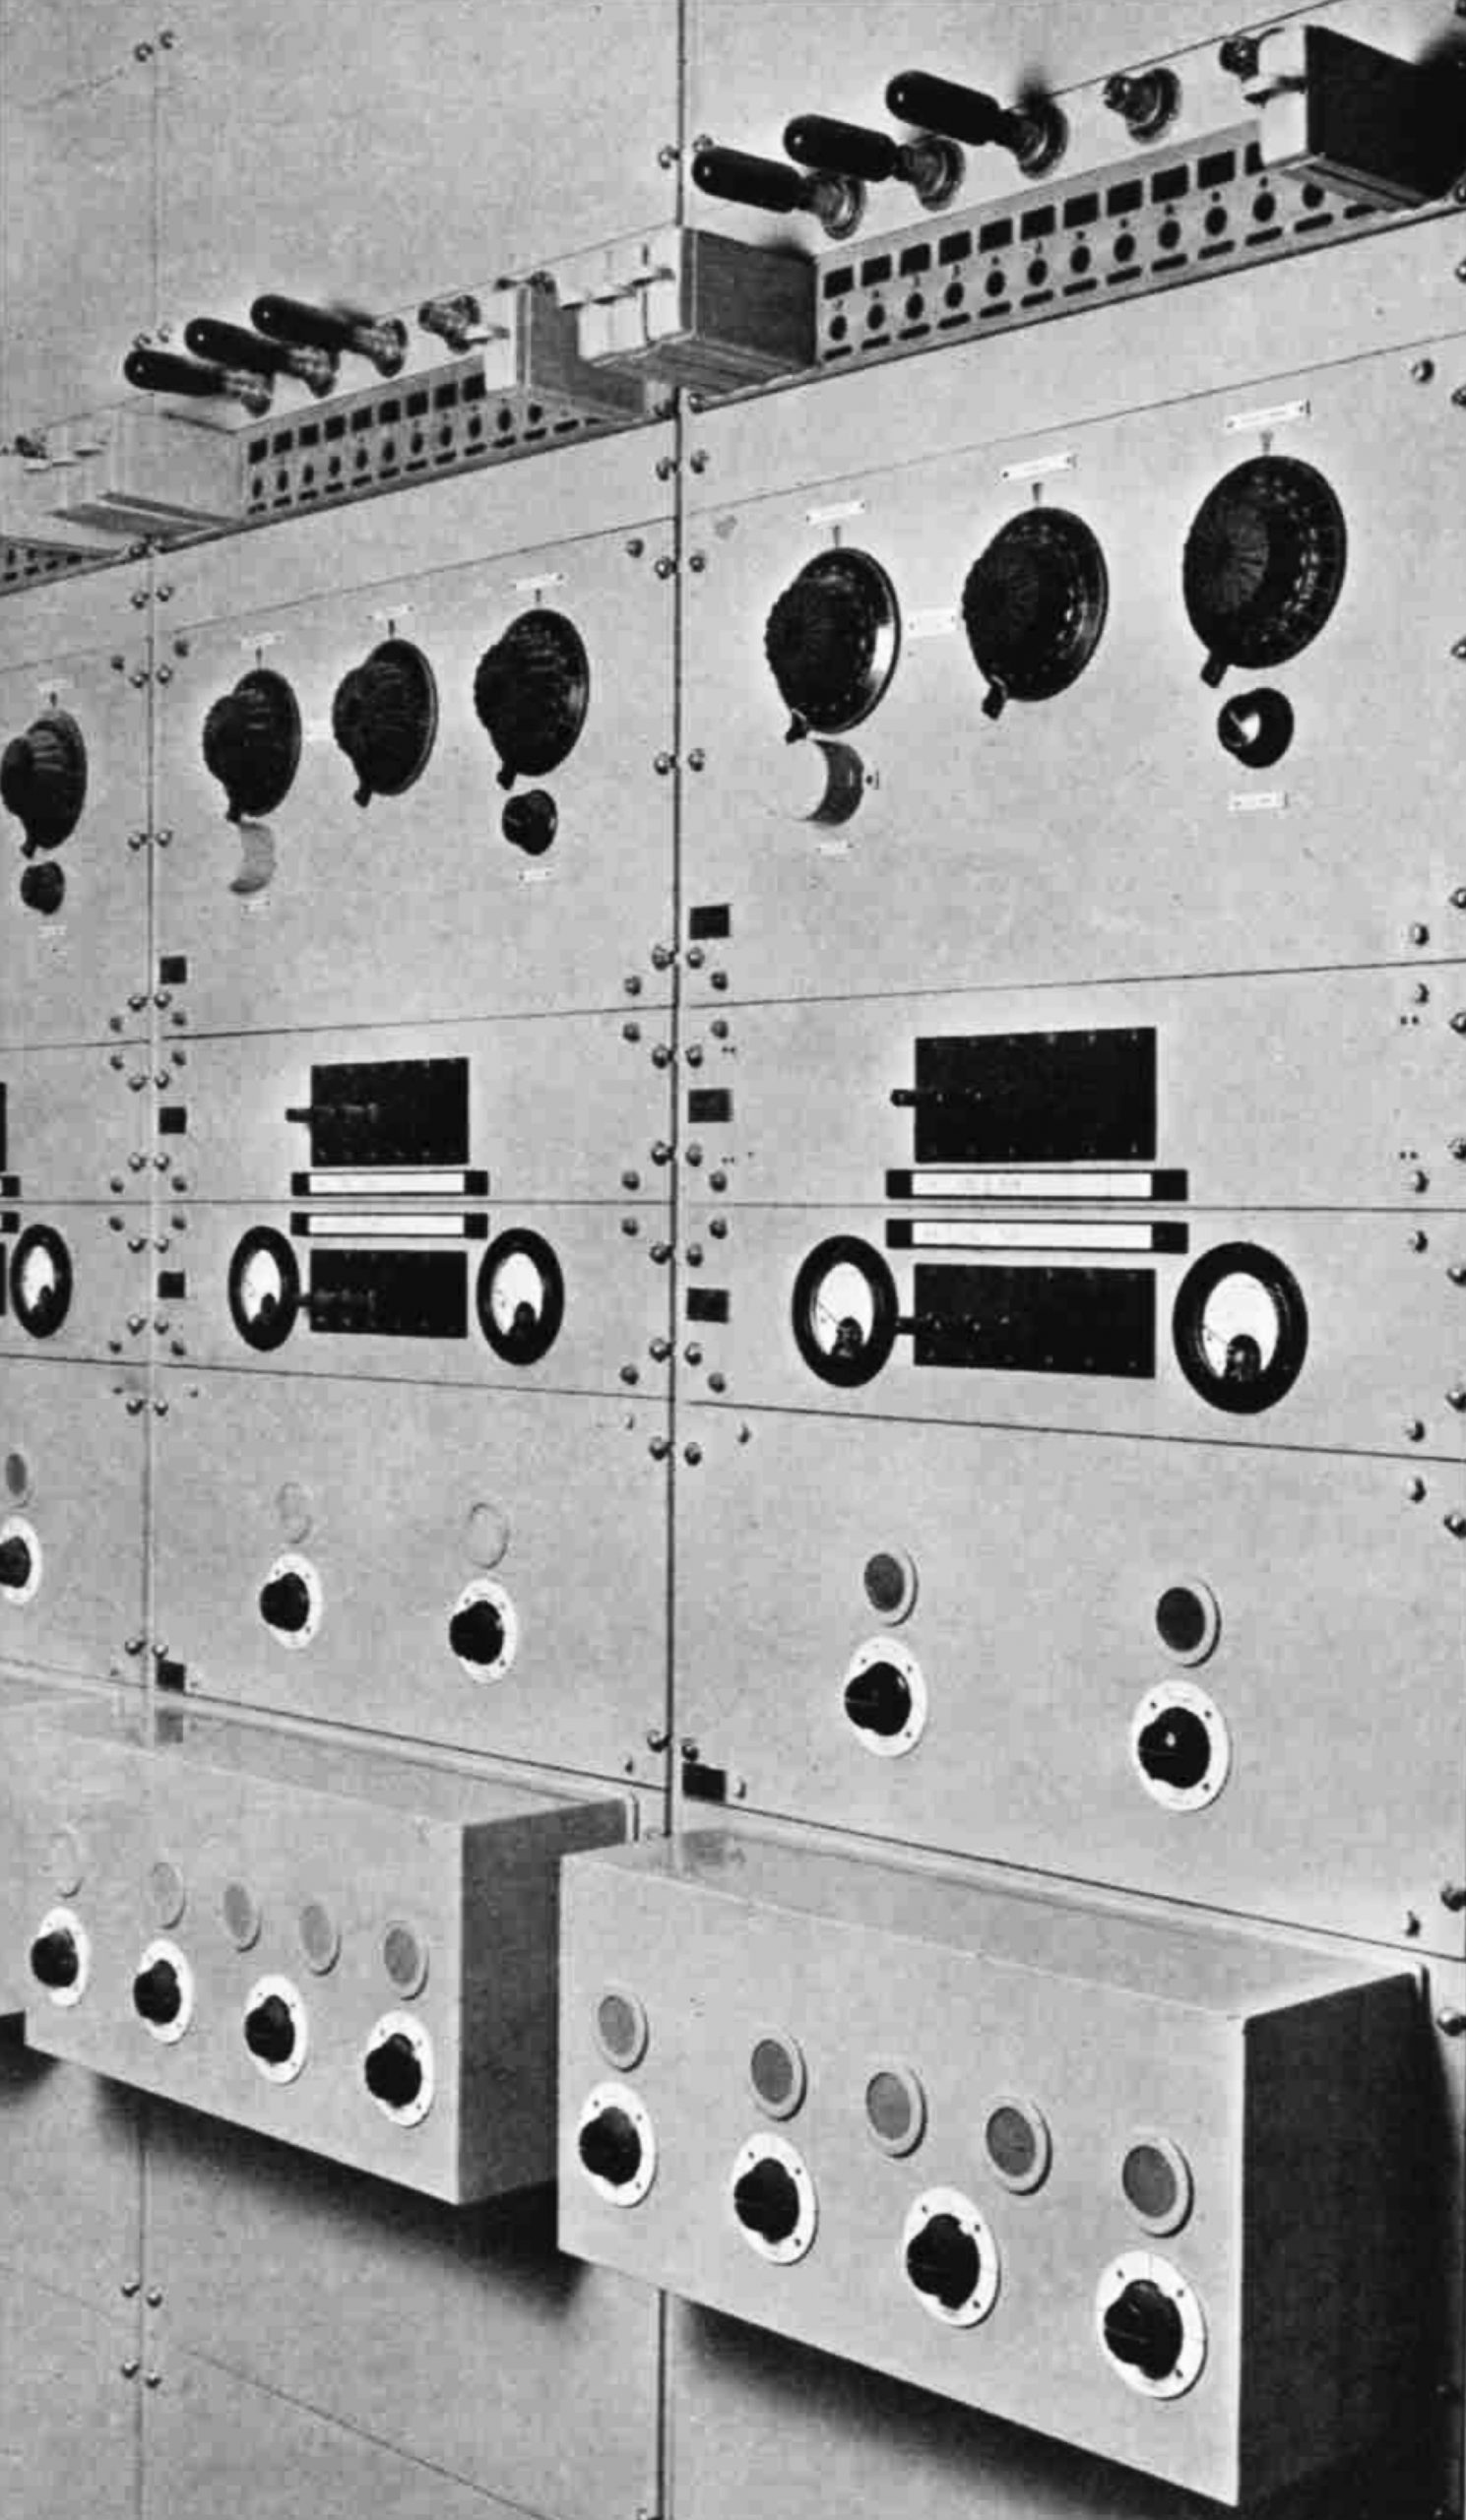 2 banks of equipment with dials and control knobs